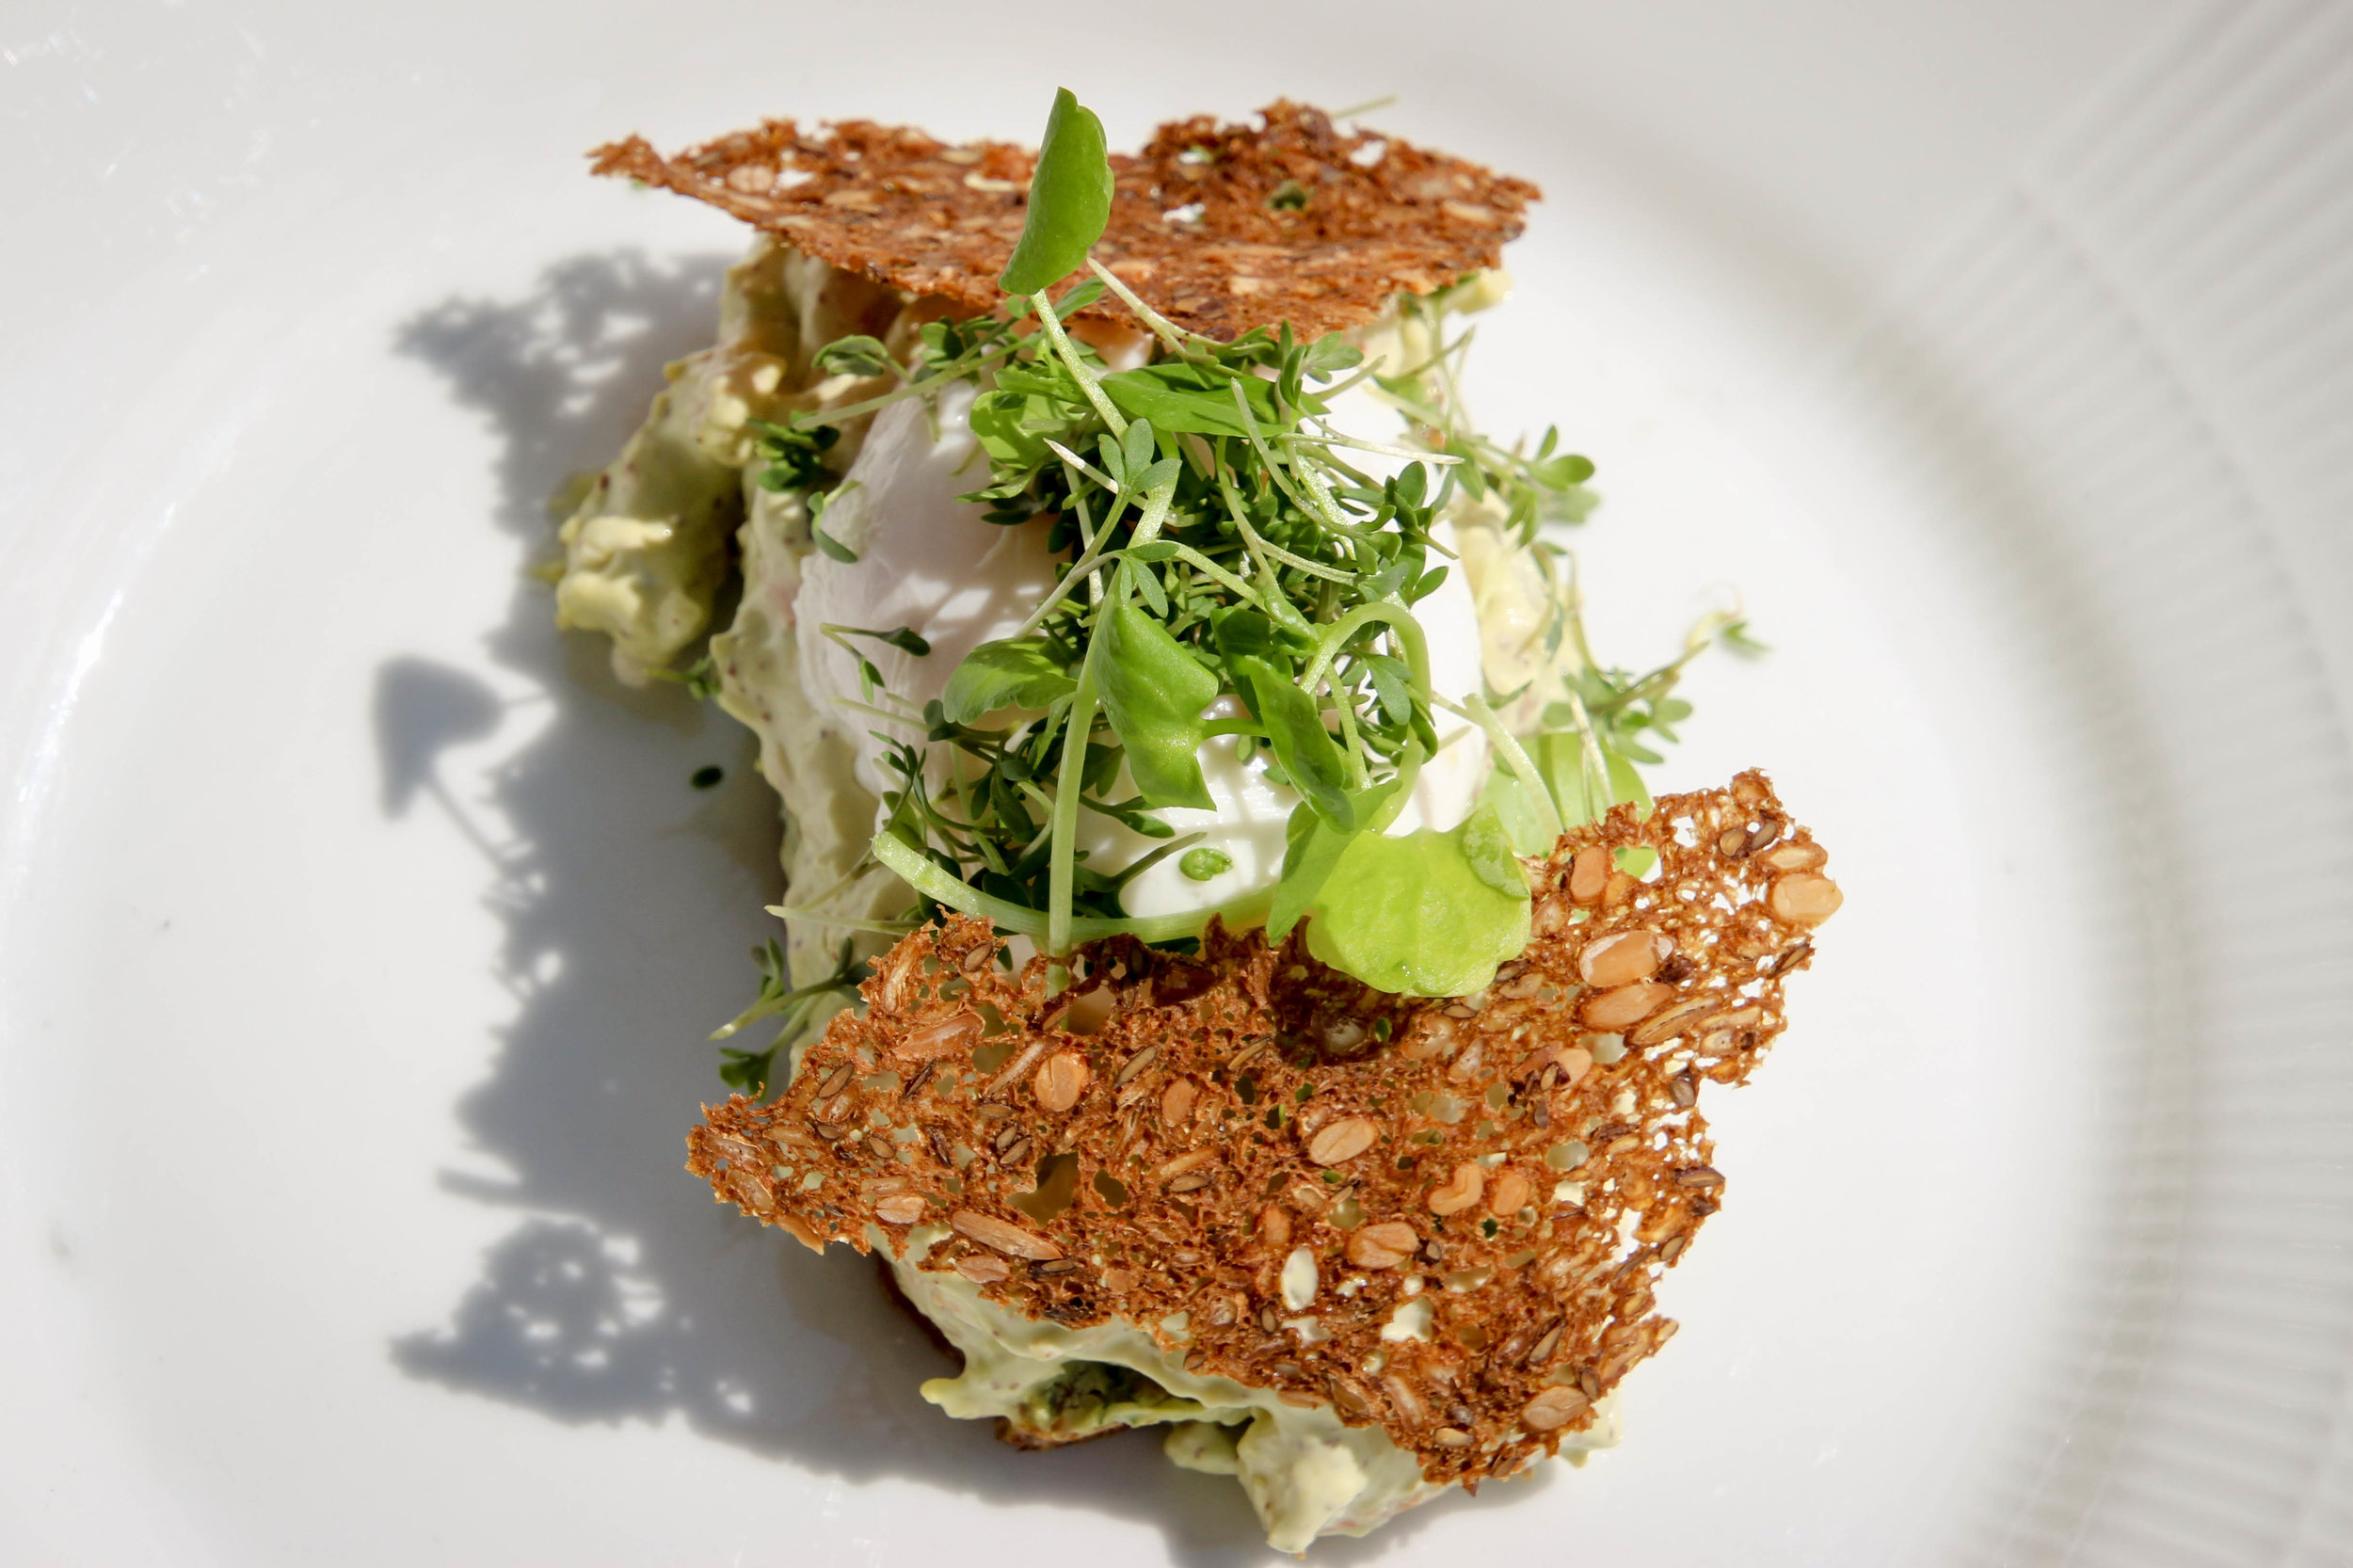 1) Poached egg with shrimp salad, cress, and chips of rye